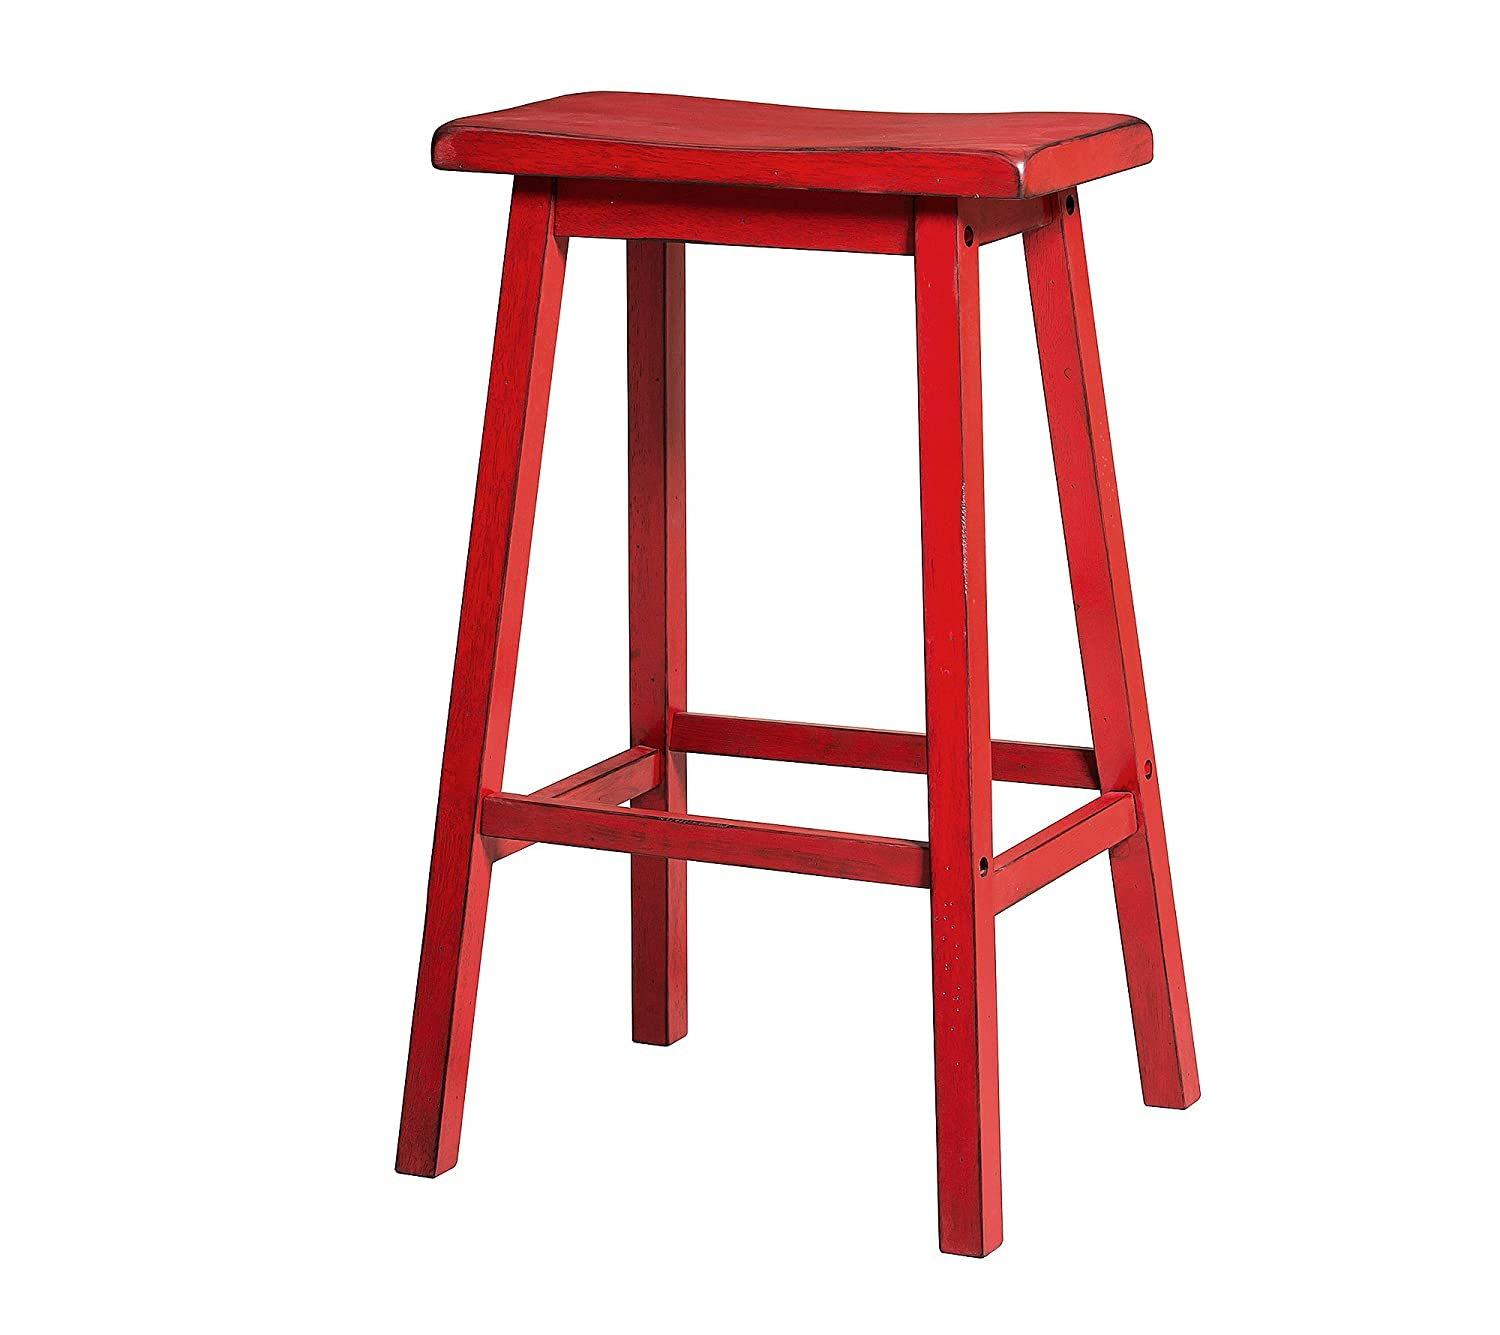 ACME Furniture Gaucho Bar Stool (Set of 2), Antique Red 96650